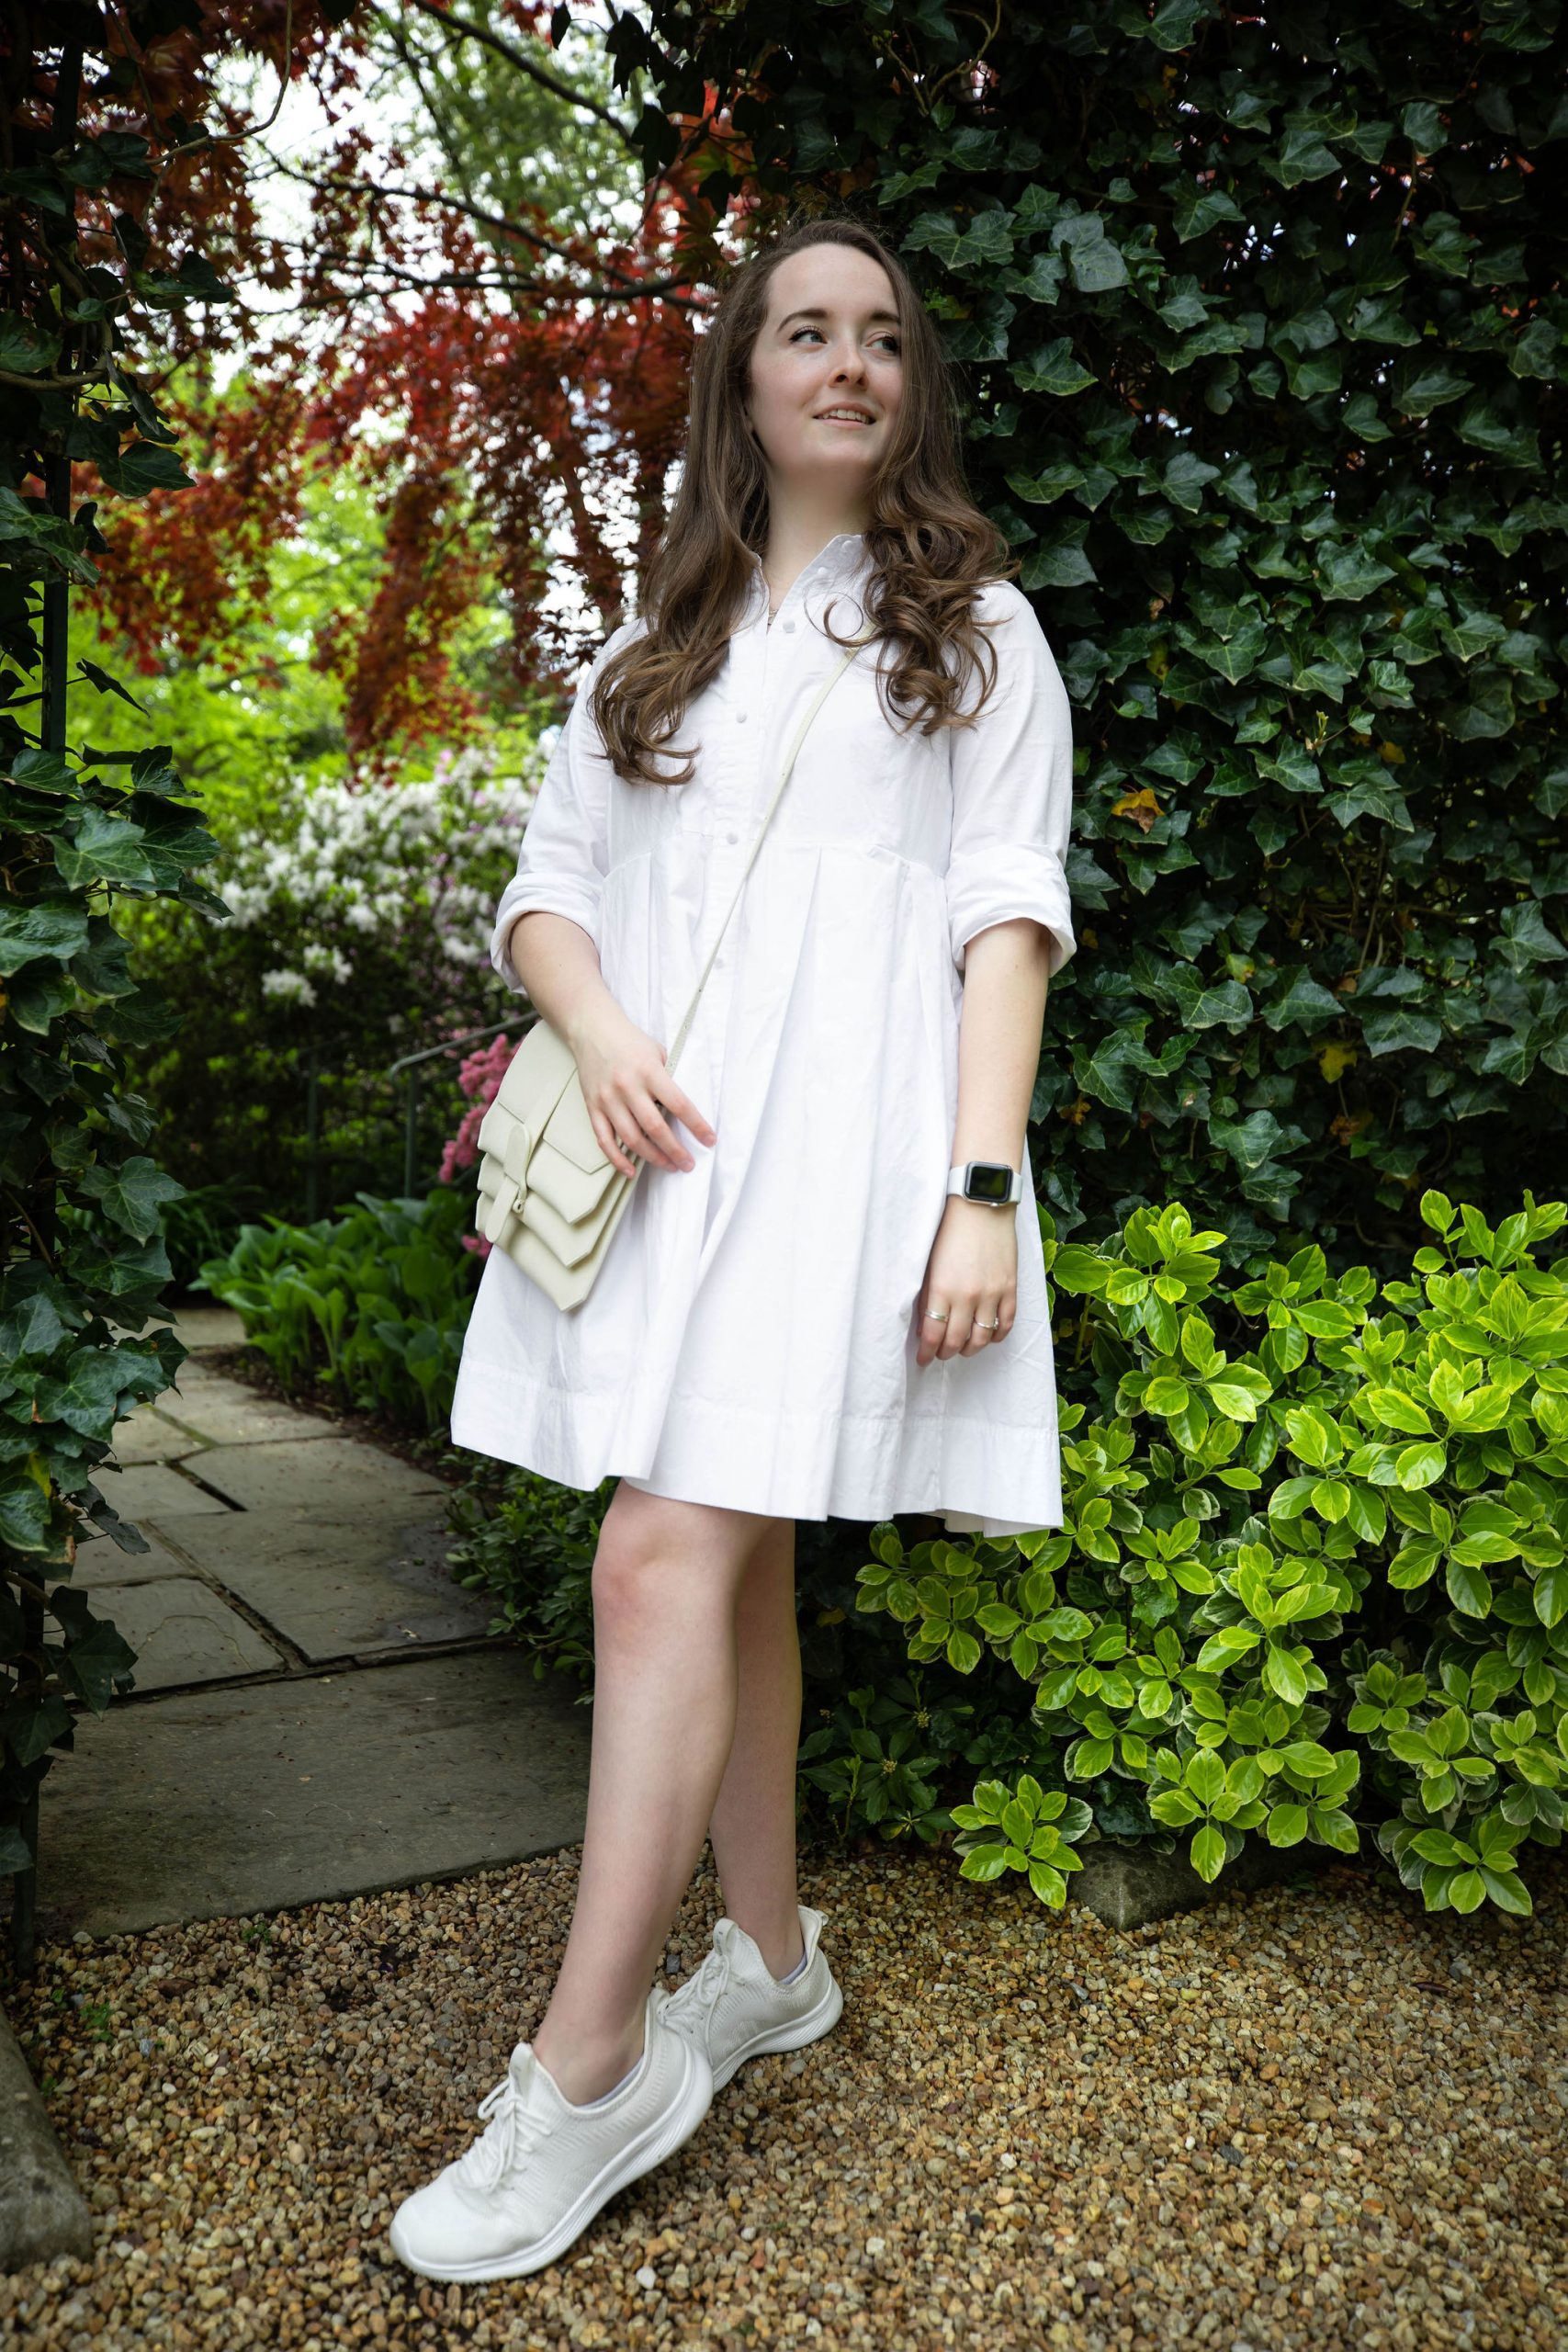 What I Wore in Washington, D.C. Madewell Shirtdress and Senreve Crossbody Convertible Bag Worn by Annie Fairfax